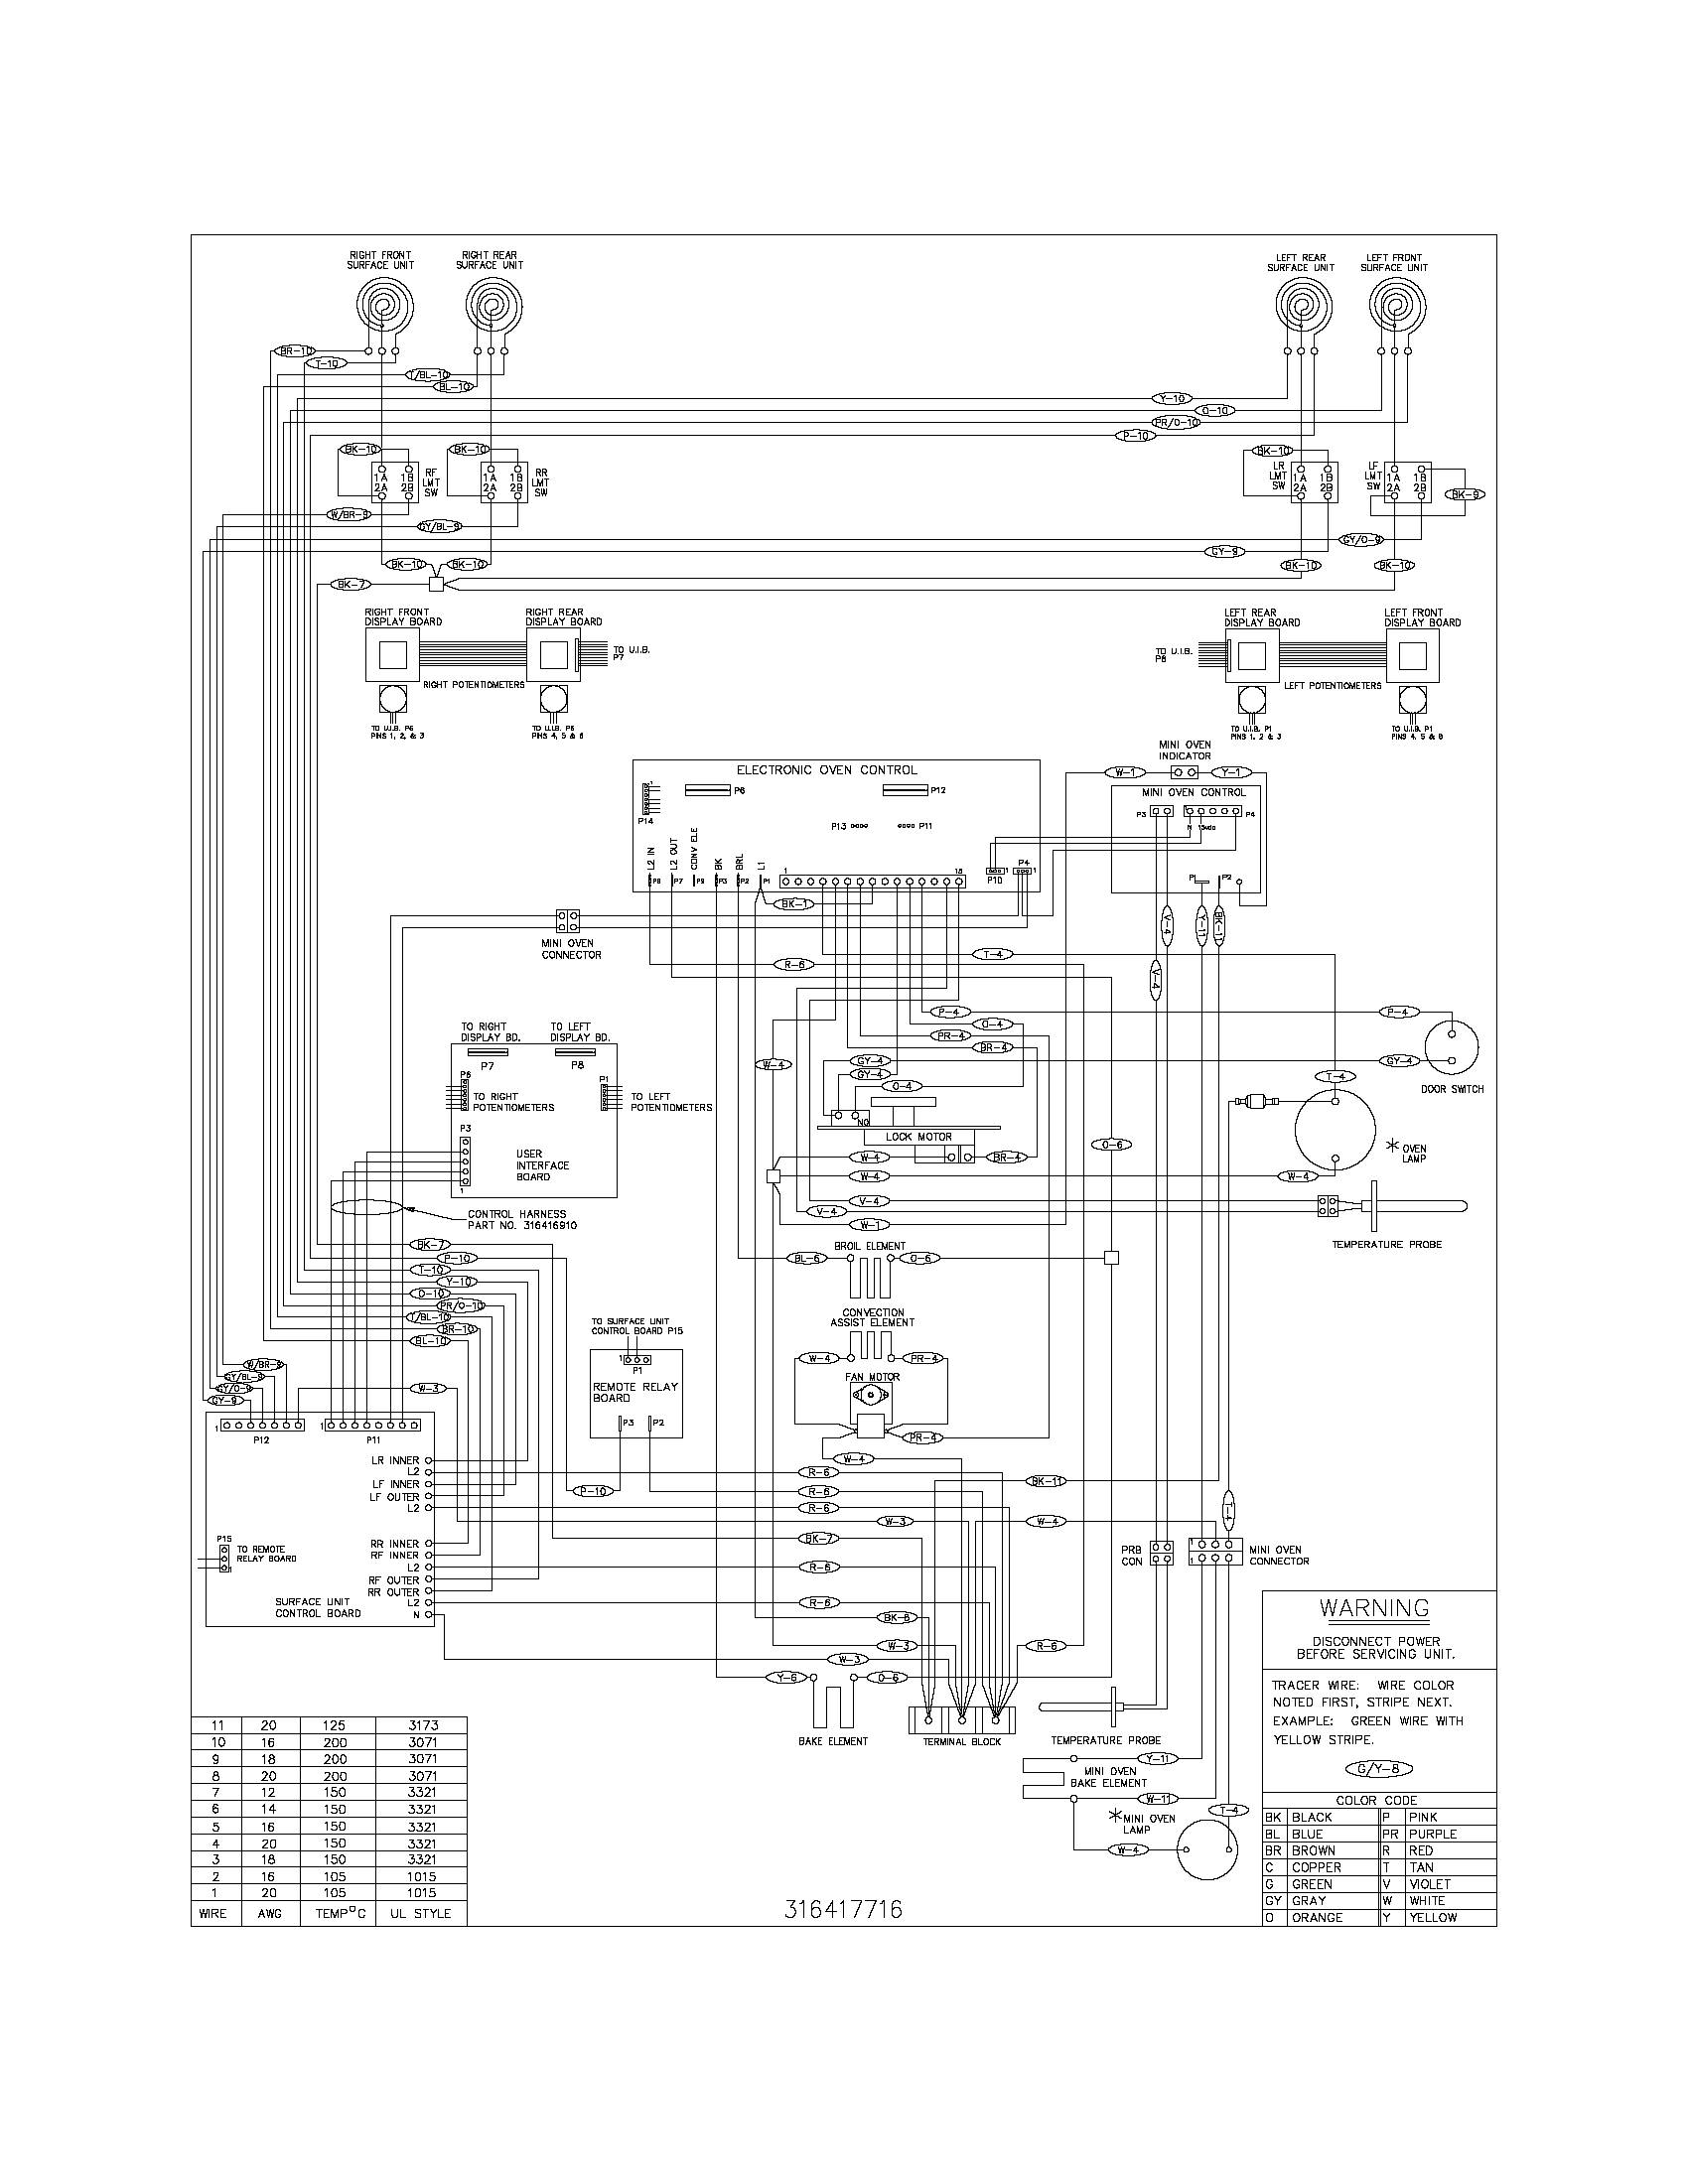 Diagram Wiring Diagram Sears 397 Full Version Hd